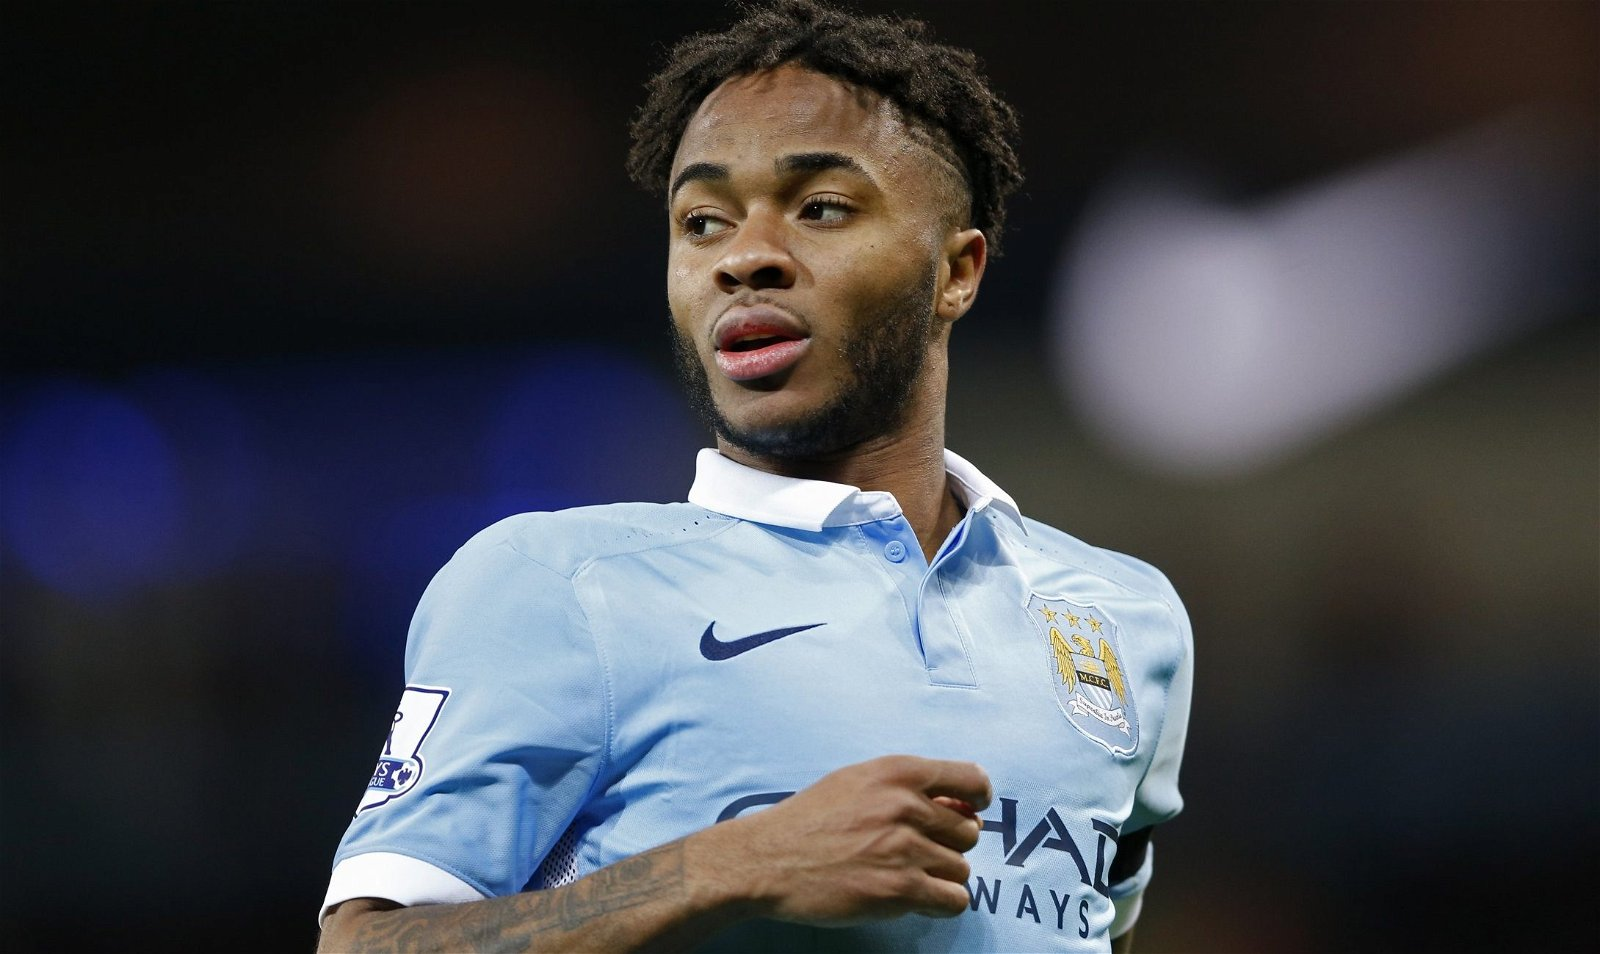 Transfers that shook the world: Raheem Sterling to Manchester City